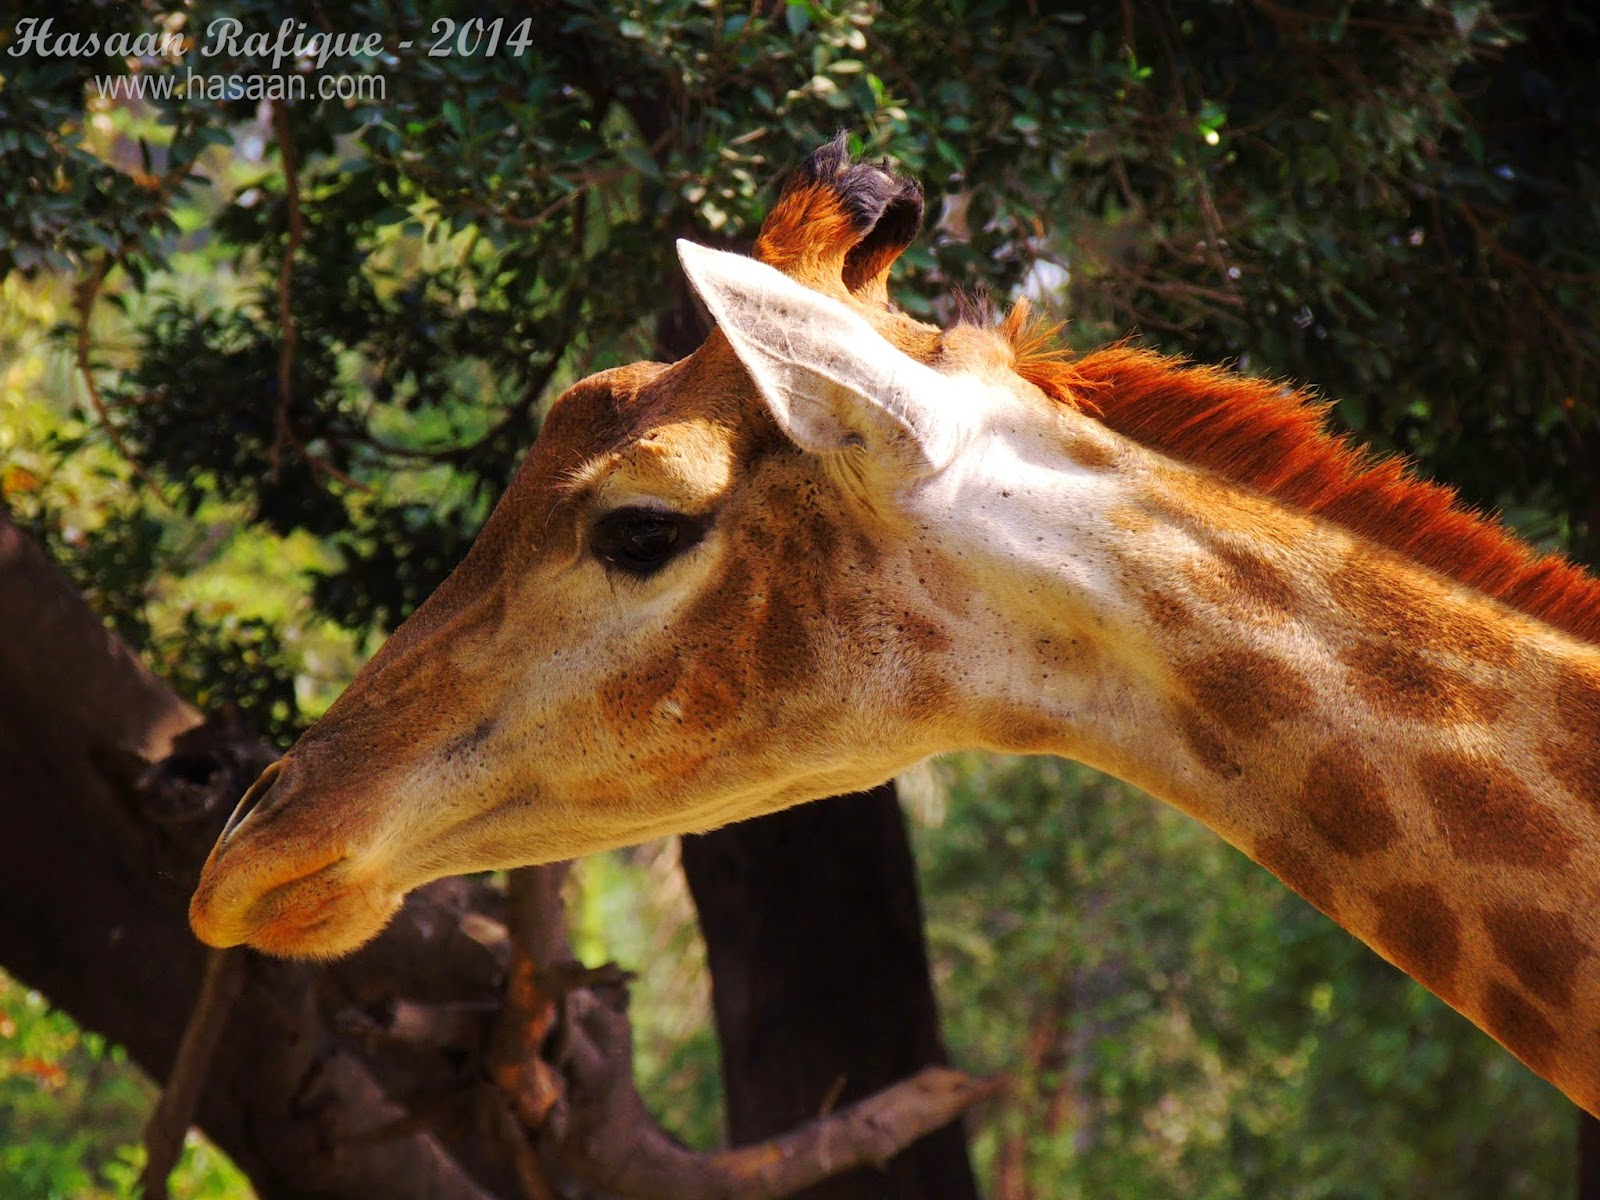 A giraffe seen from up-close.